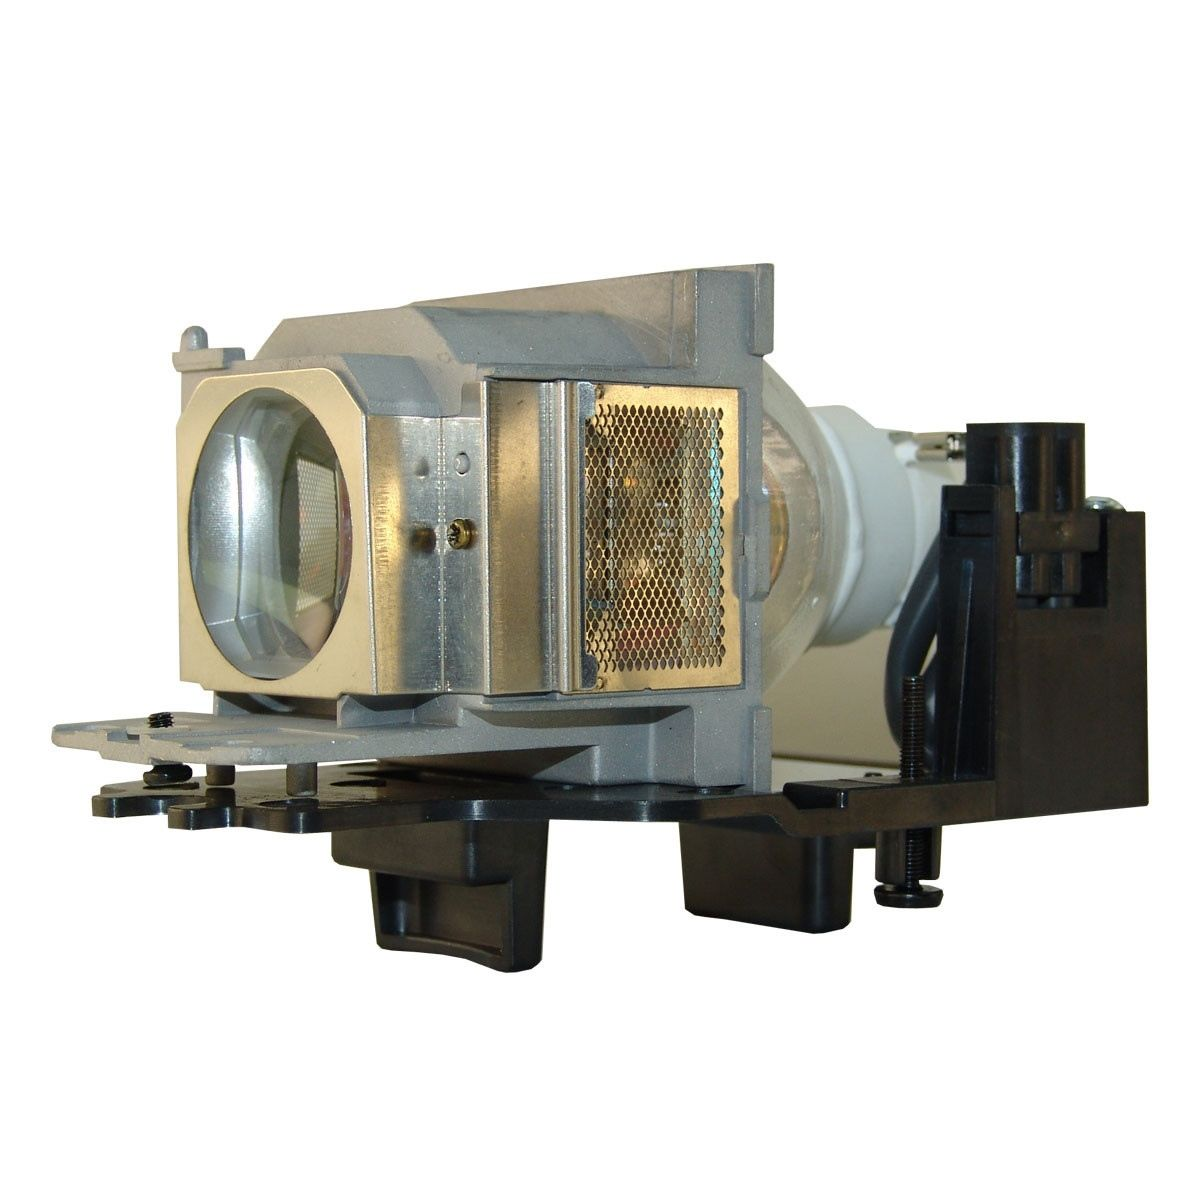 Projector Lamp Bulb LMP-E210 LMPE210 for SONY VPL-EX130 VPL-EX130+ with housing lmp h160 lmph160 for sony vpl aw10 vpl aw10s vpl aw15 vpl aw15s projector bulb lamp with housing with 180 days warranty